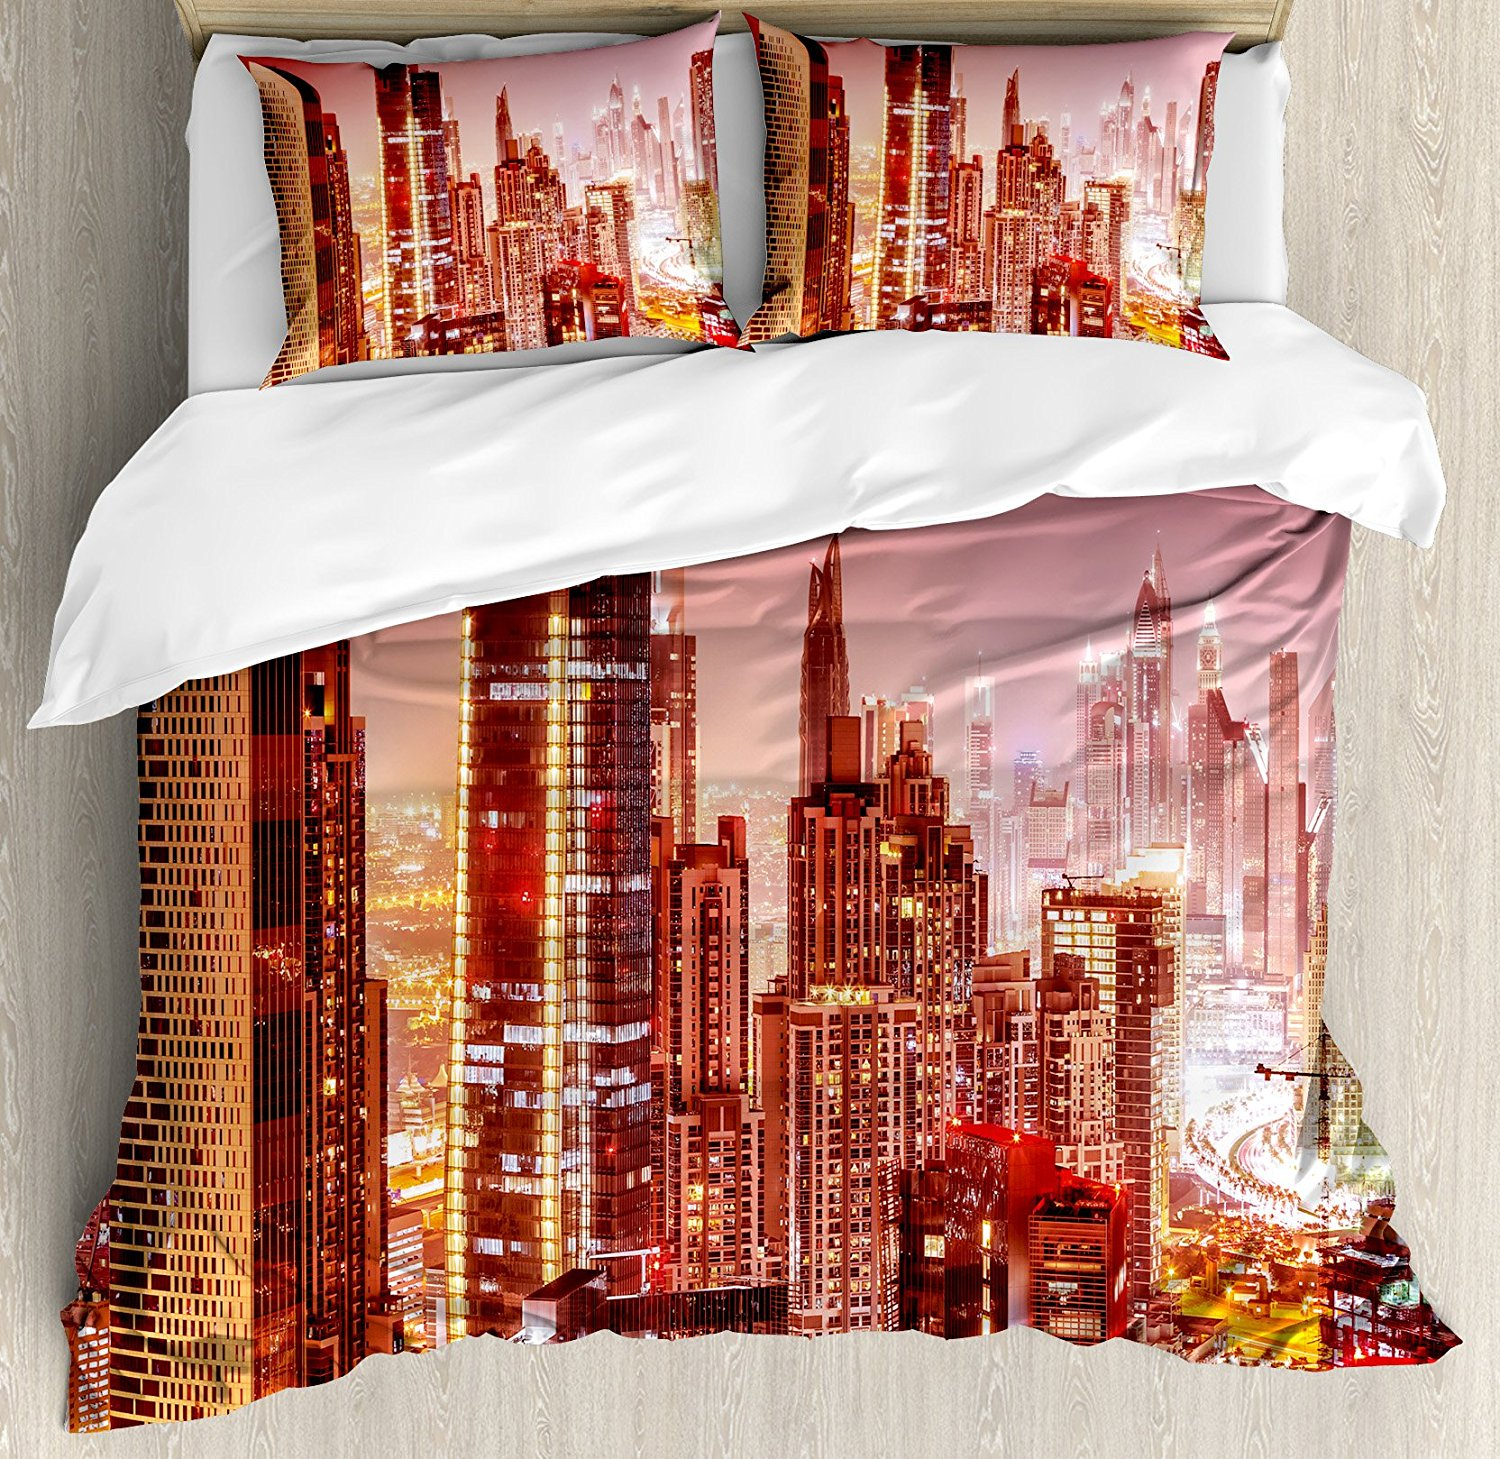 Cityscape Duvet Cover Set King Size Dubai at Night Cityscape with Tall Skyscrapers Panorama Picture Arabian Peninsula